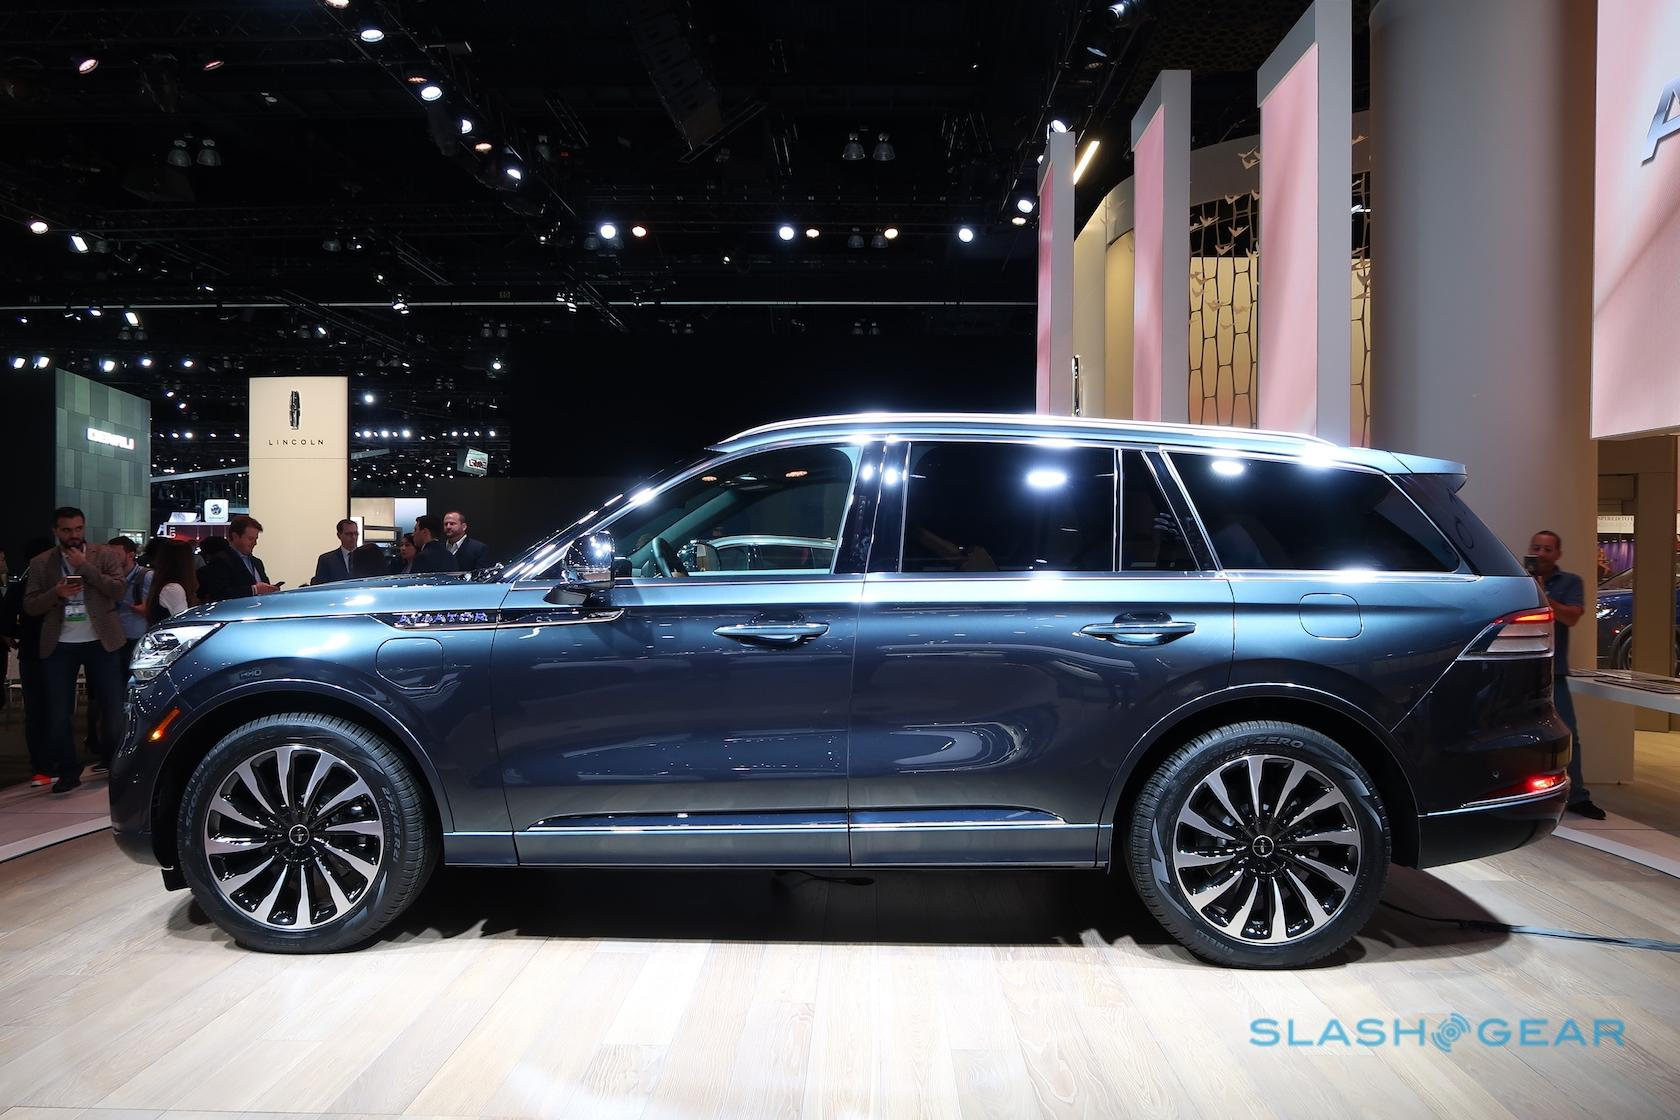 2020 Lincoln Aviator Price, Release Date, Interior >> The 2020 Lincoln Aviator Pulls Out The Stops To Sweep Up In Midsize